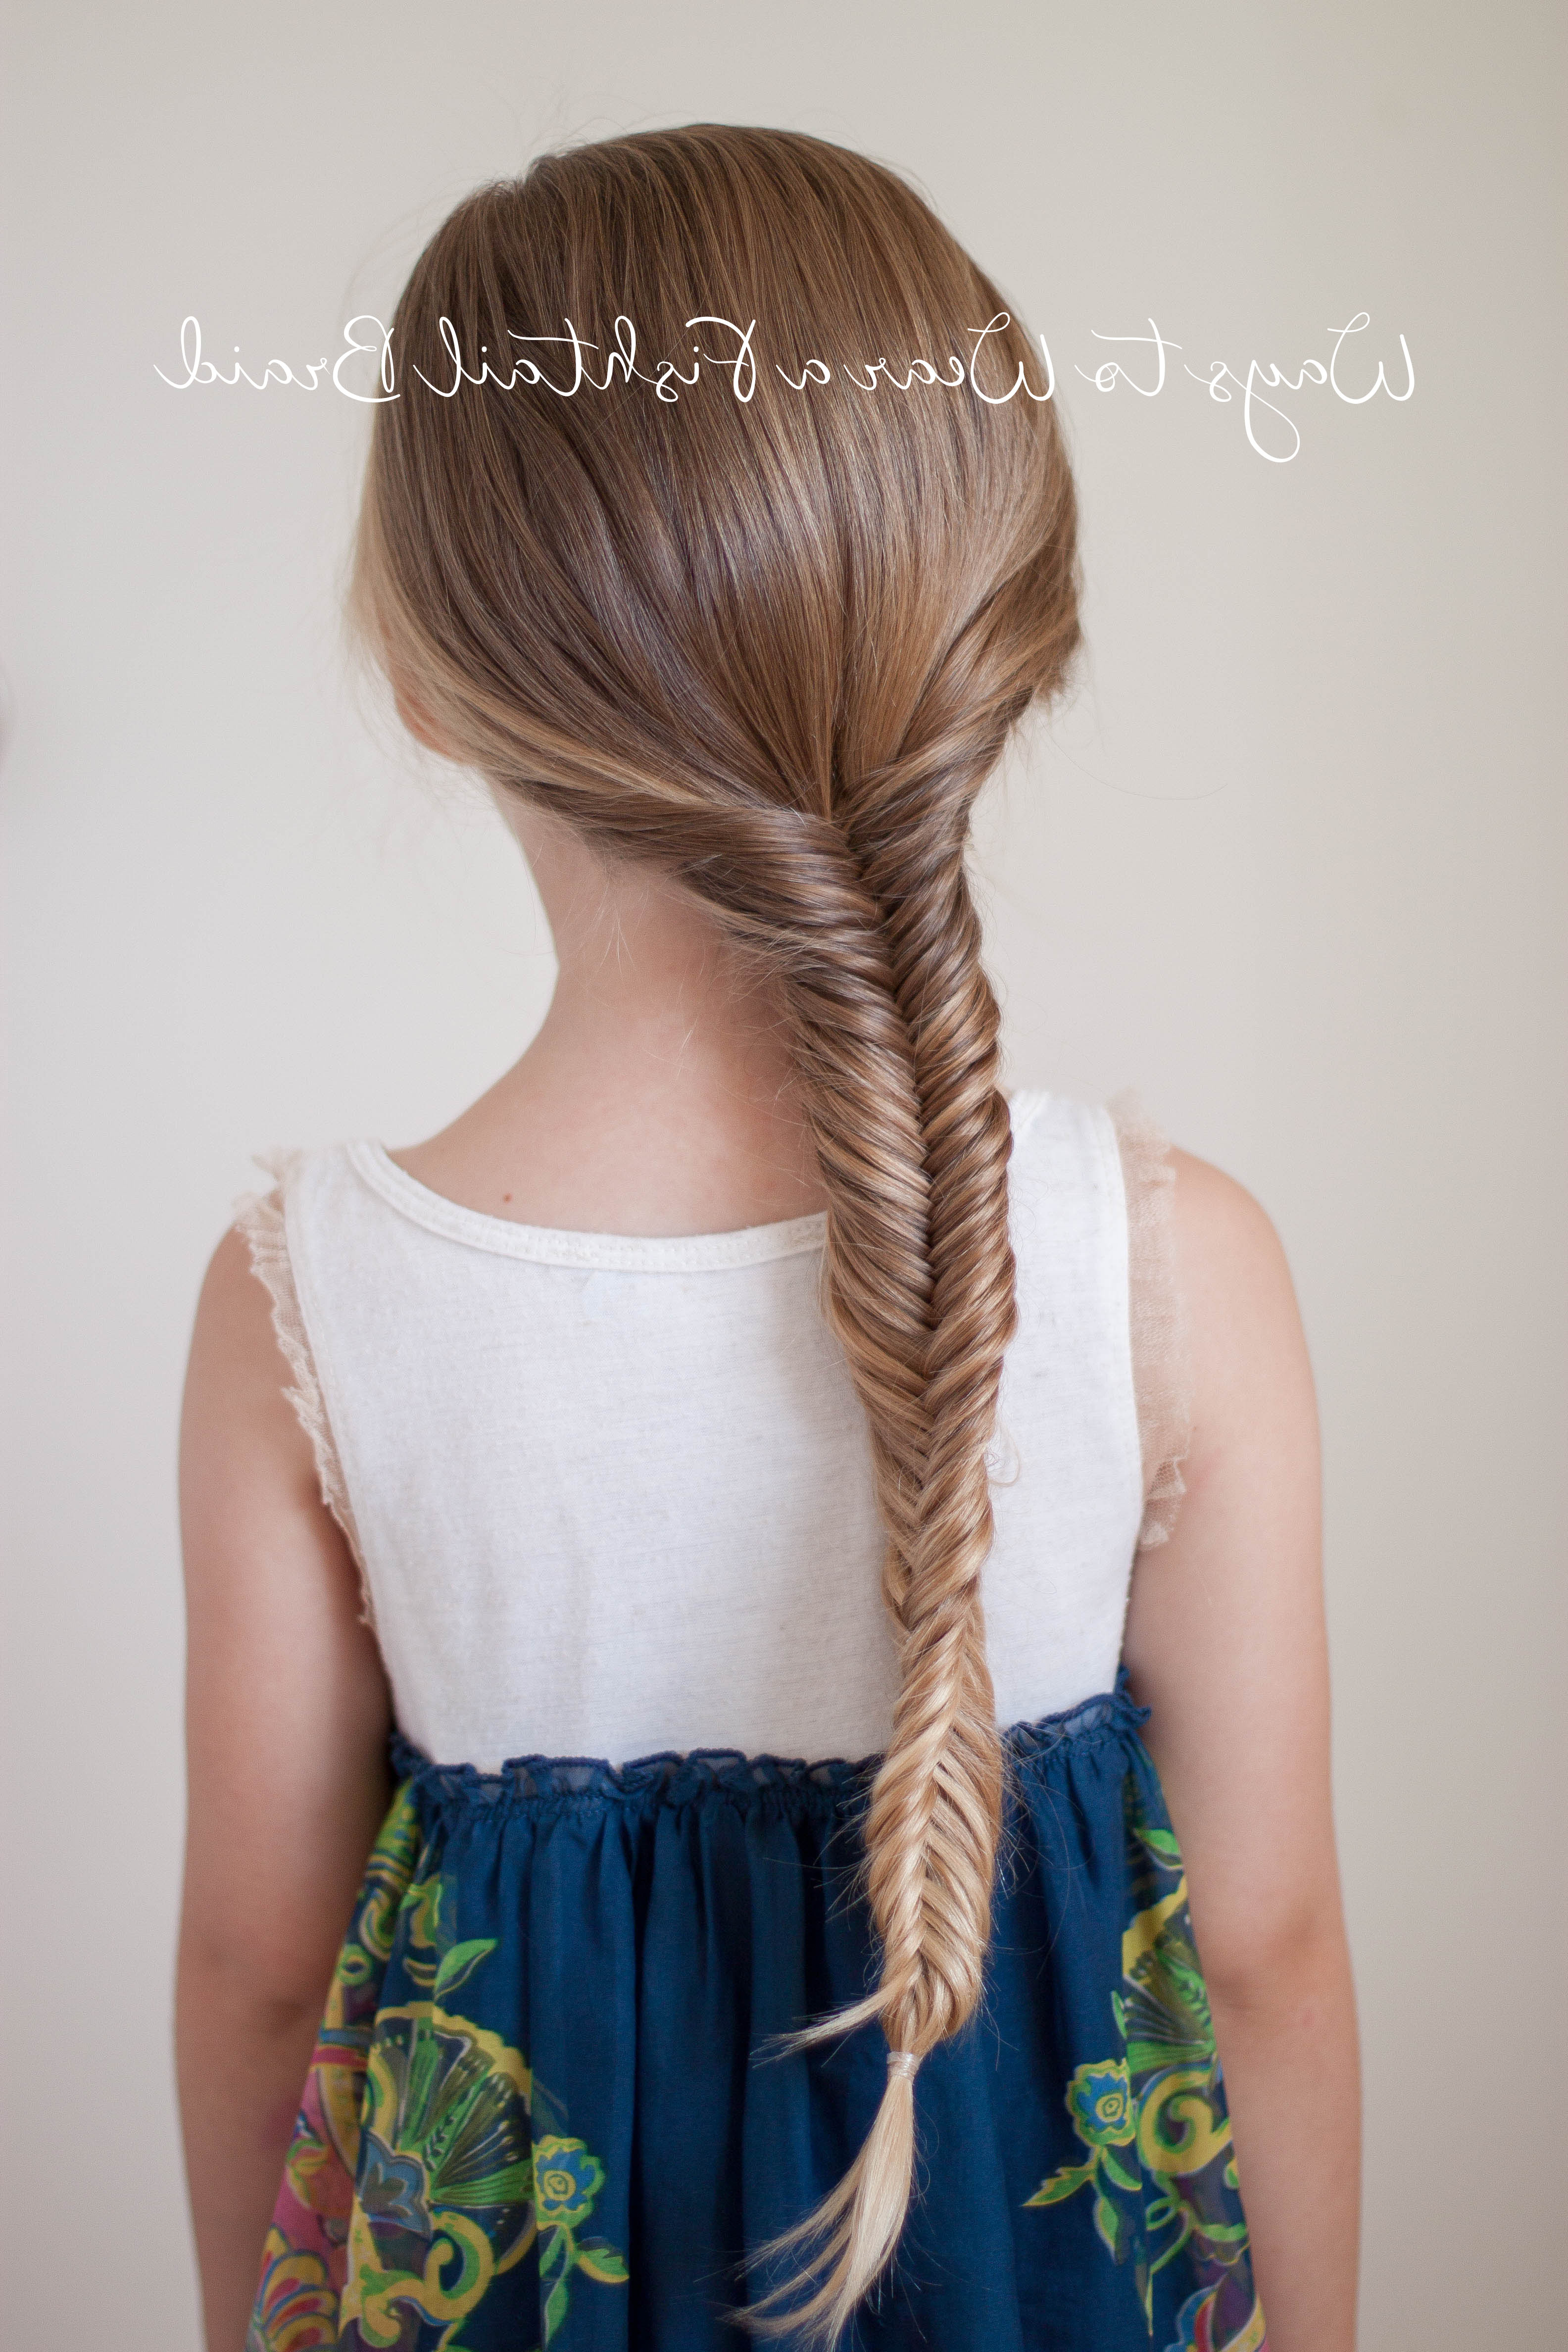 Cute Girls Hairstyles Regarding 2020 Micro Braids In Side Fishtail Braid (View 7 of 20)